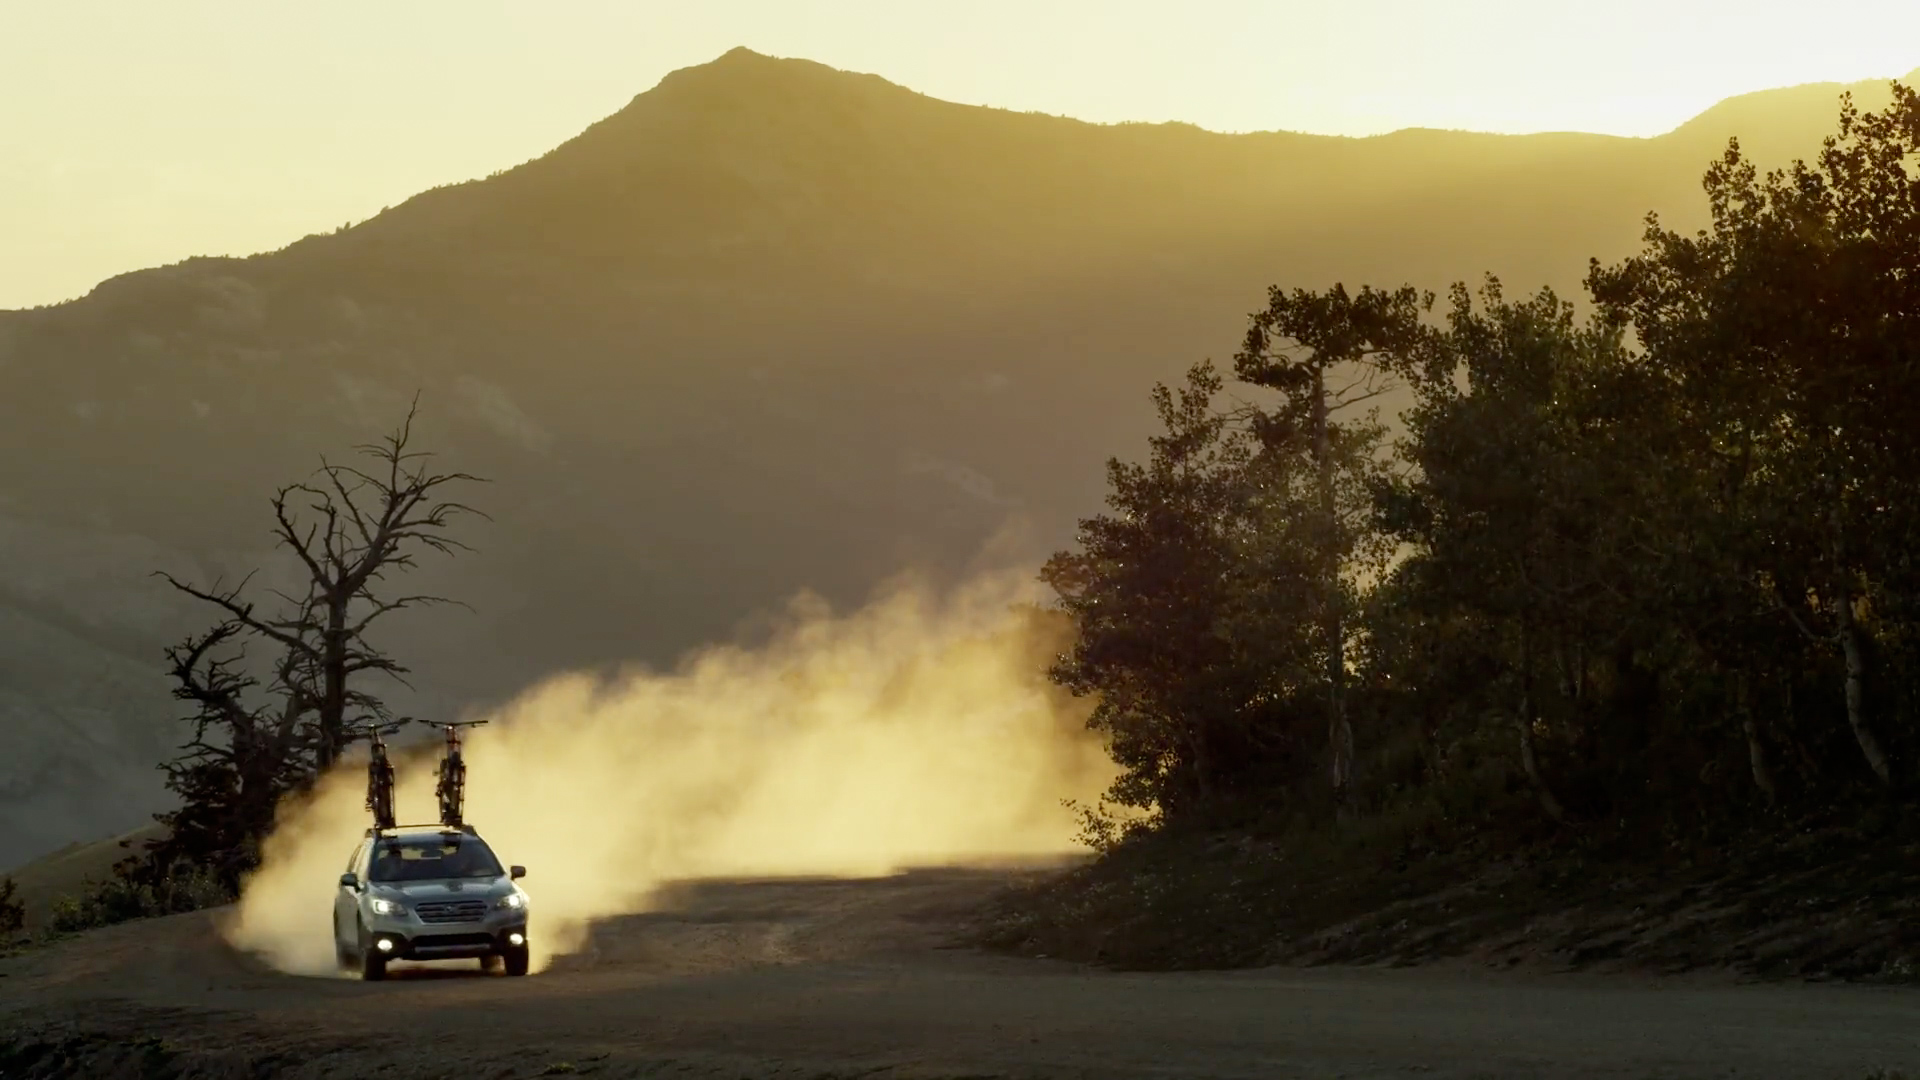 Subaru Outback - Four part series featuring the Subaru Outback in it's natural environment. Engaging real customers and capturing their passion and enthusiasim for the everyday adventure...